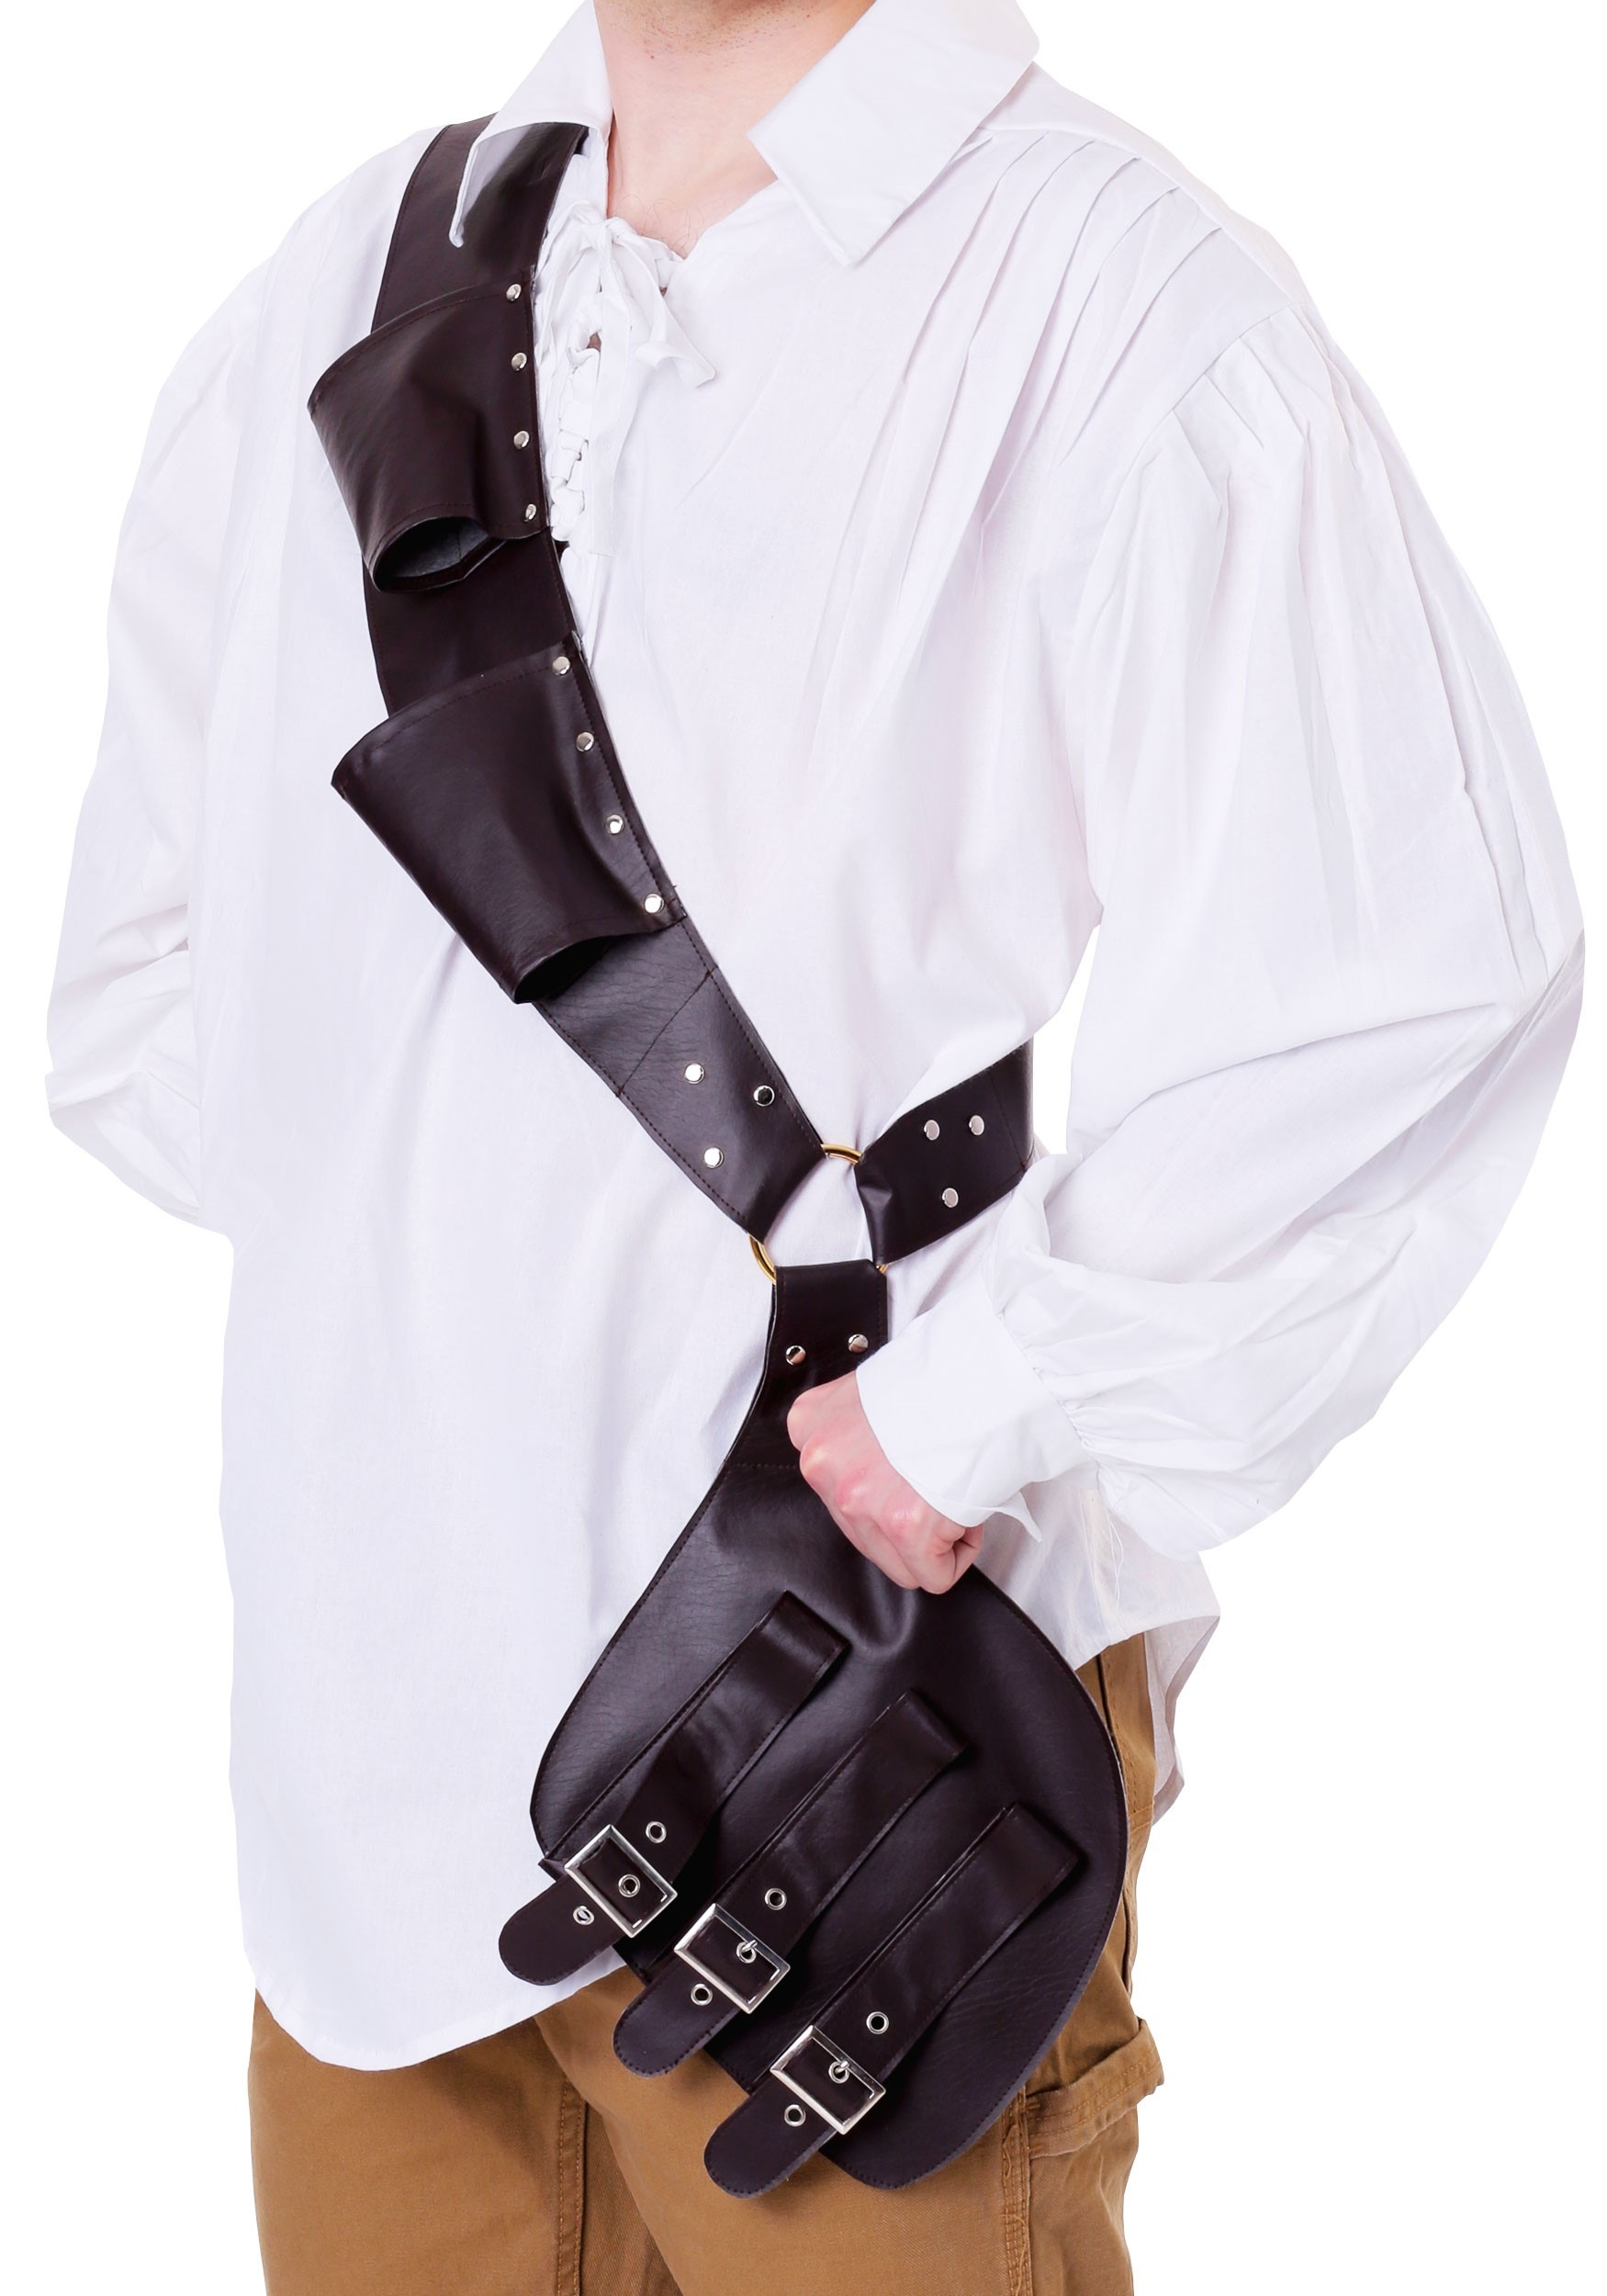 Pirate's Shoulder Holster for an Adult